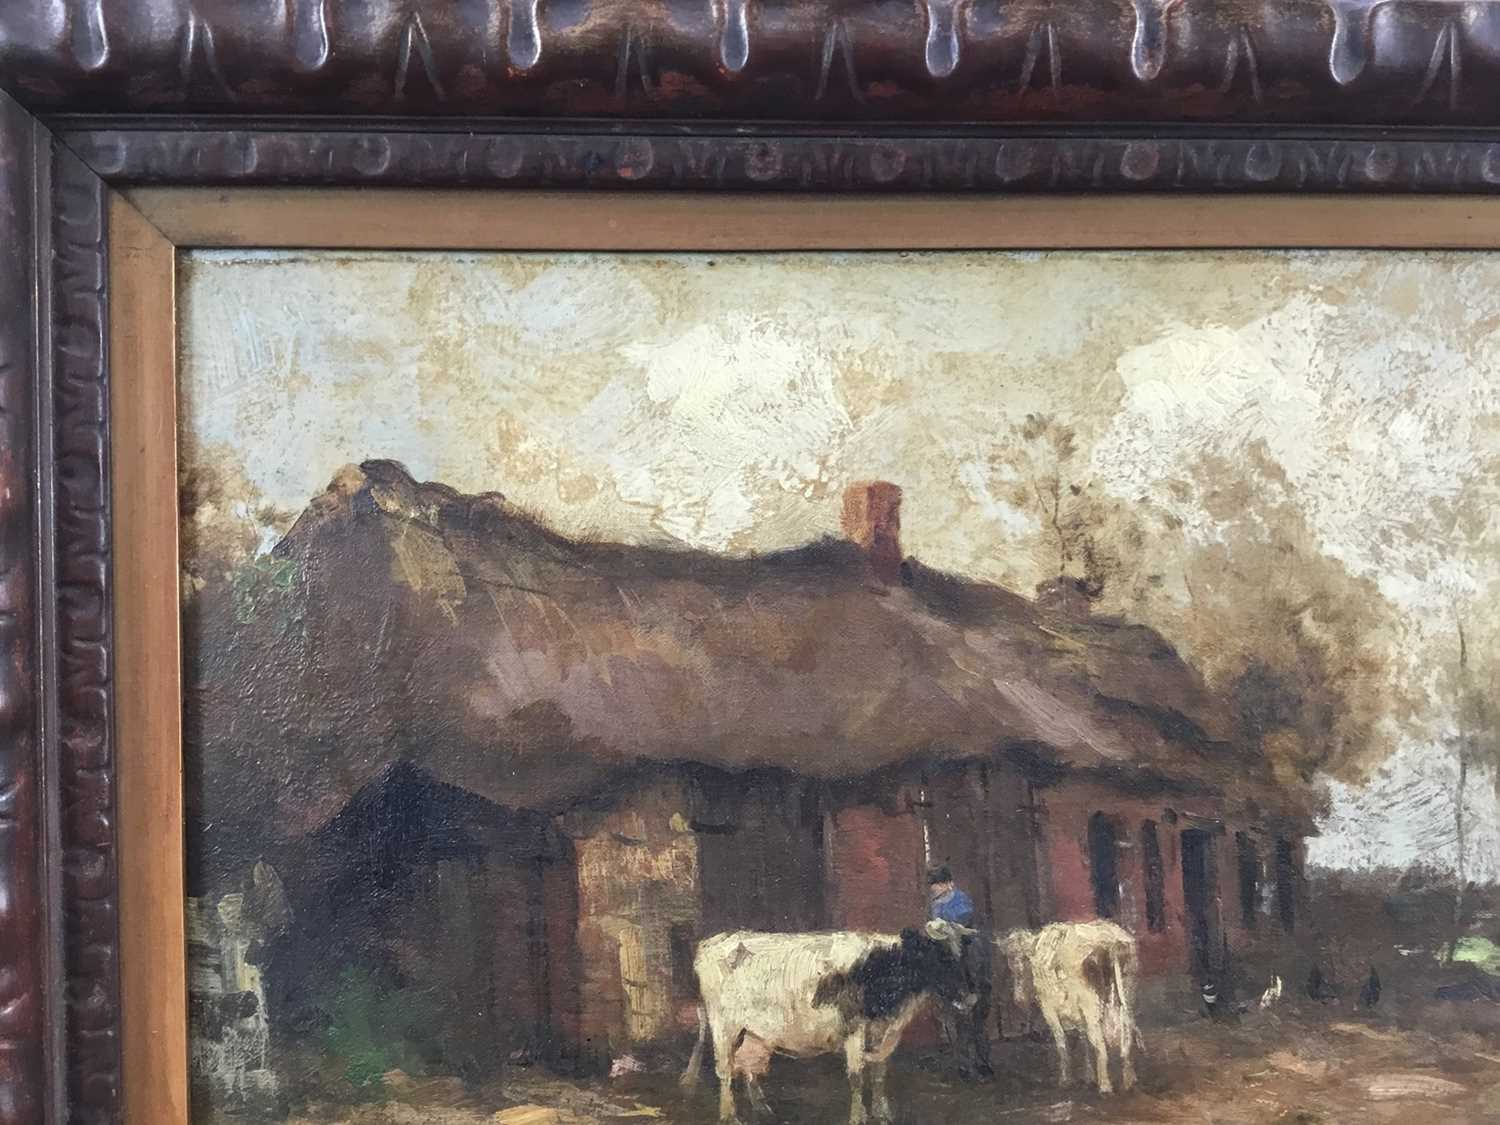 Willem G. F. Jansen (1871-1949) oil on canvas Figure and cattle in landscape - Image 5 of 10